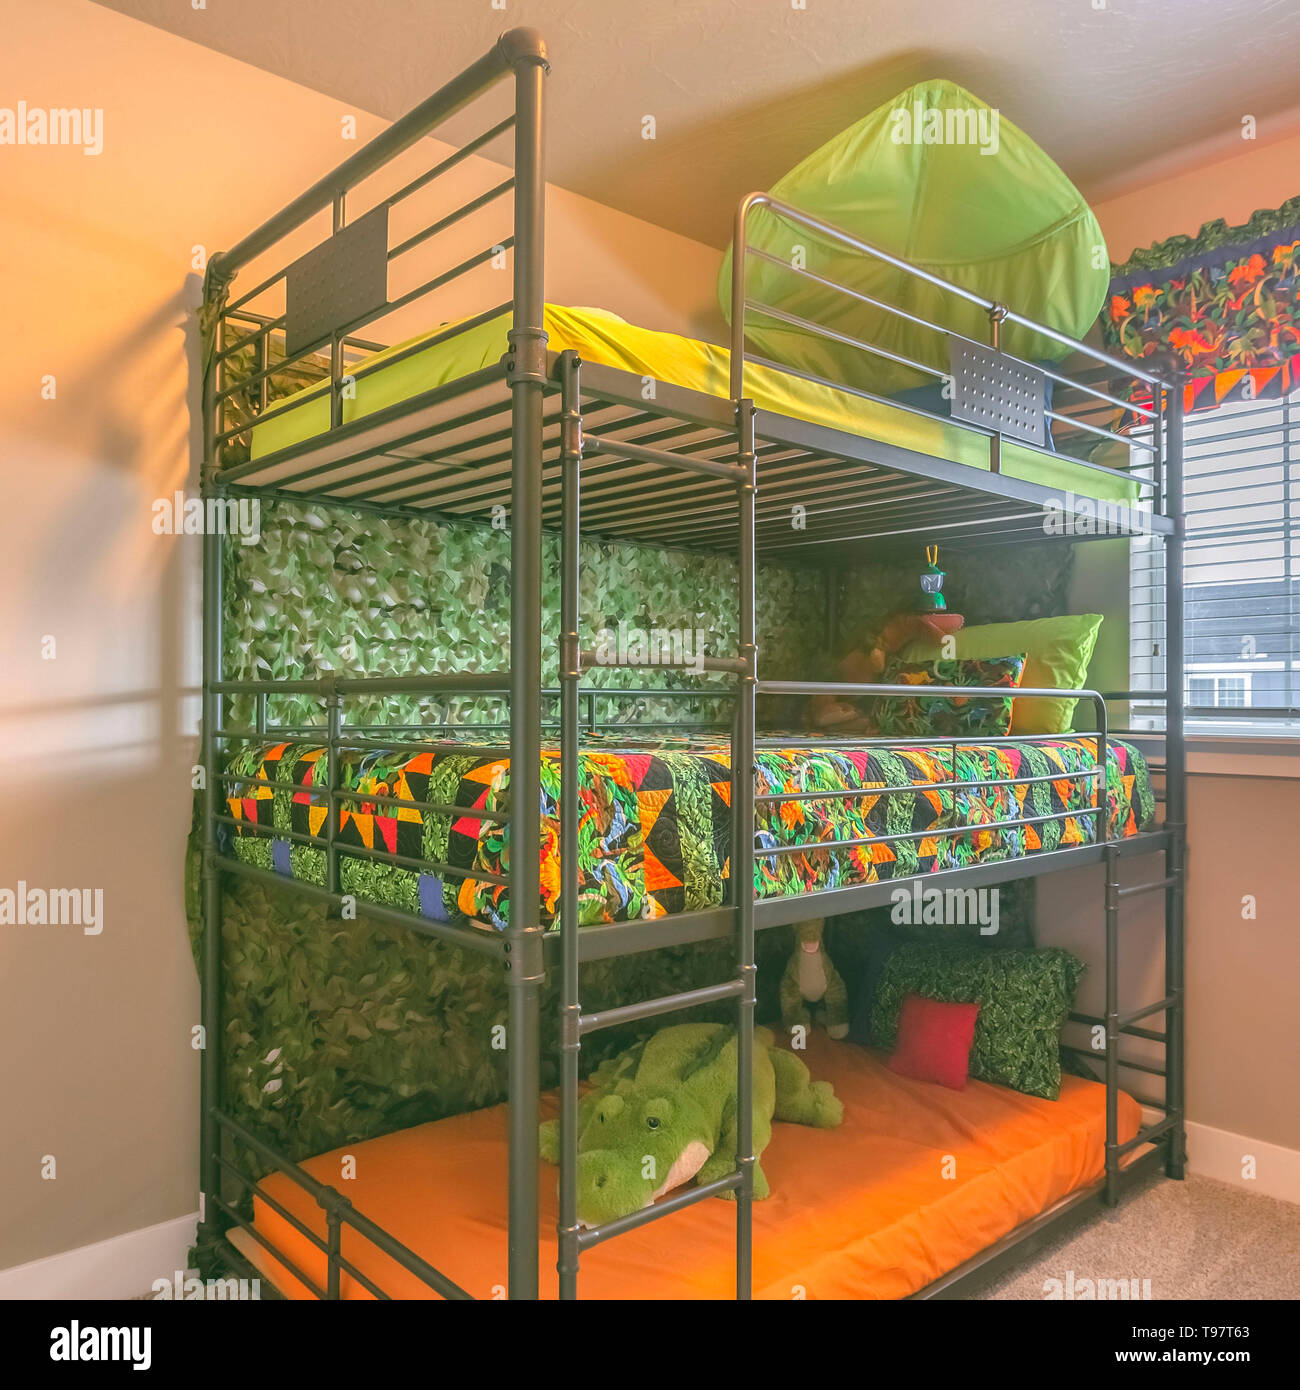 Square Cozy Room Interior With A Colorful Triple Bunk Bed For Children Stock Photo Alamy